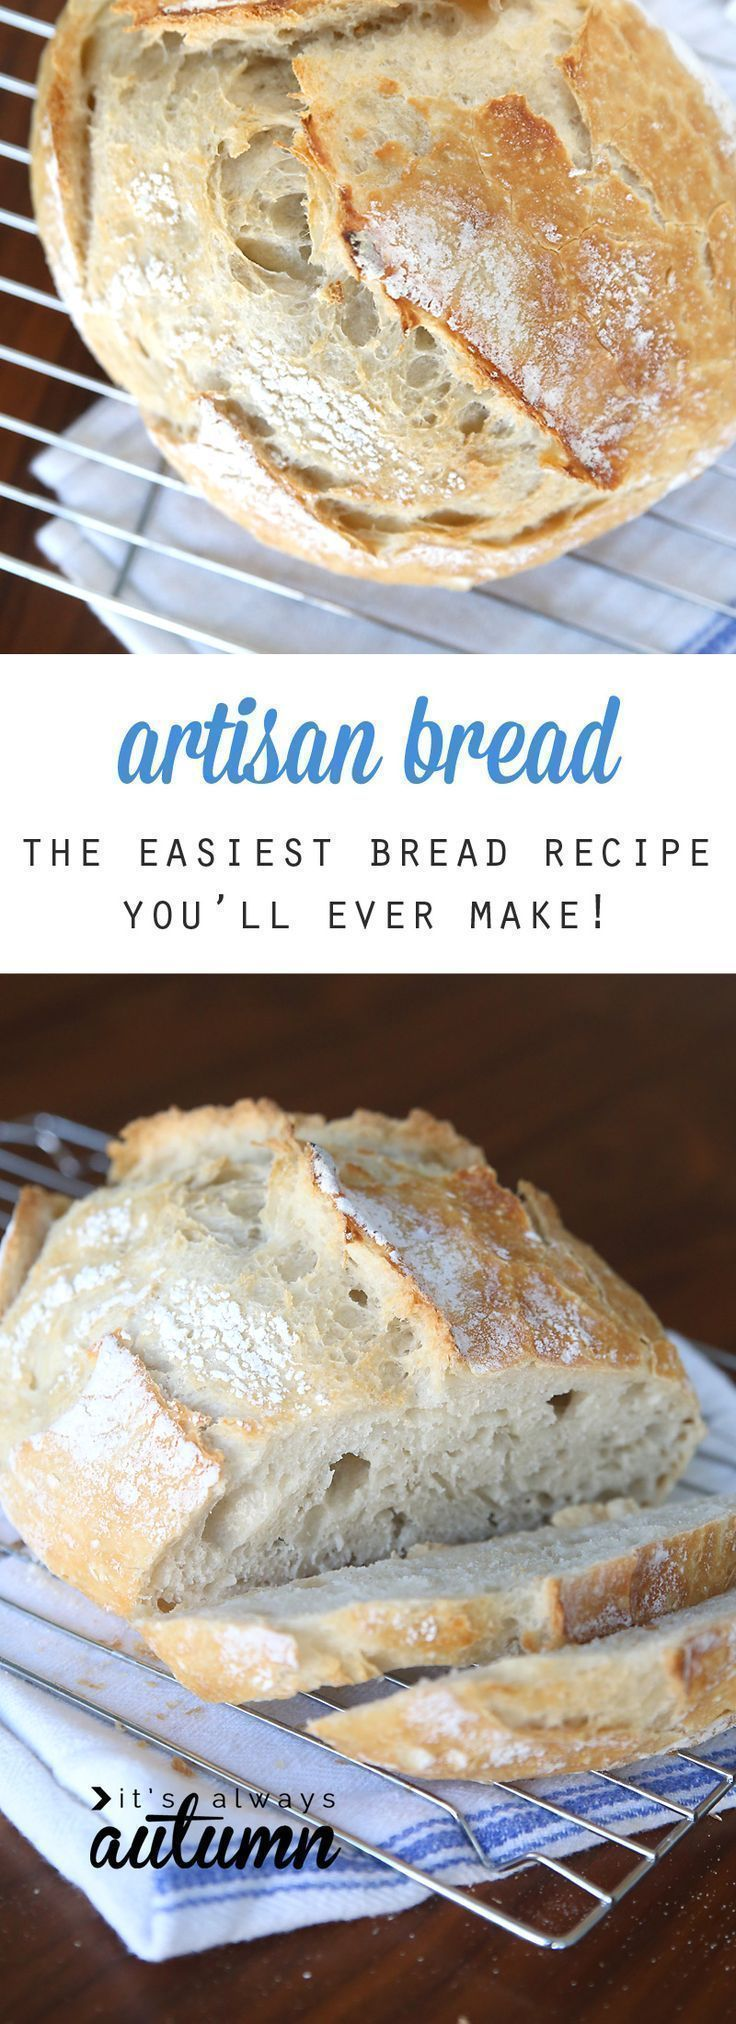 4 ingredient no-knead artisan bread recipe ~ add a little dried rosemary...delicious!